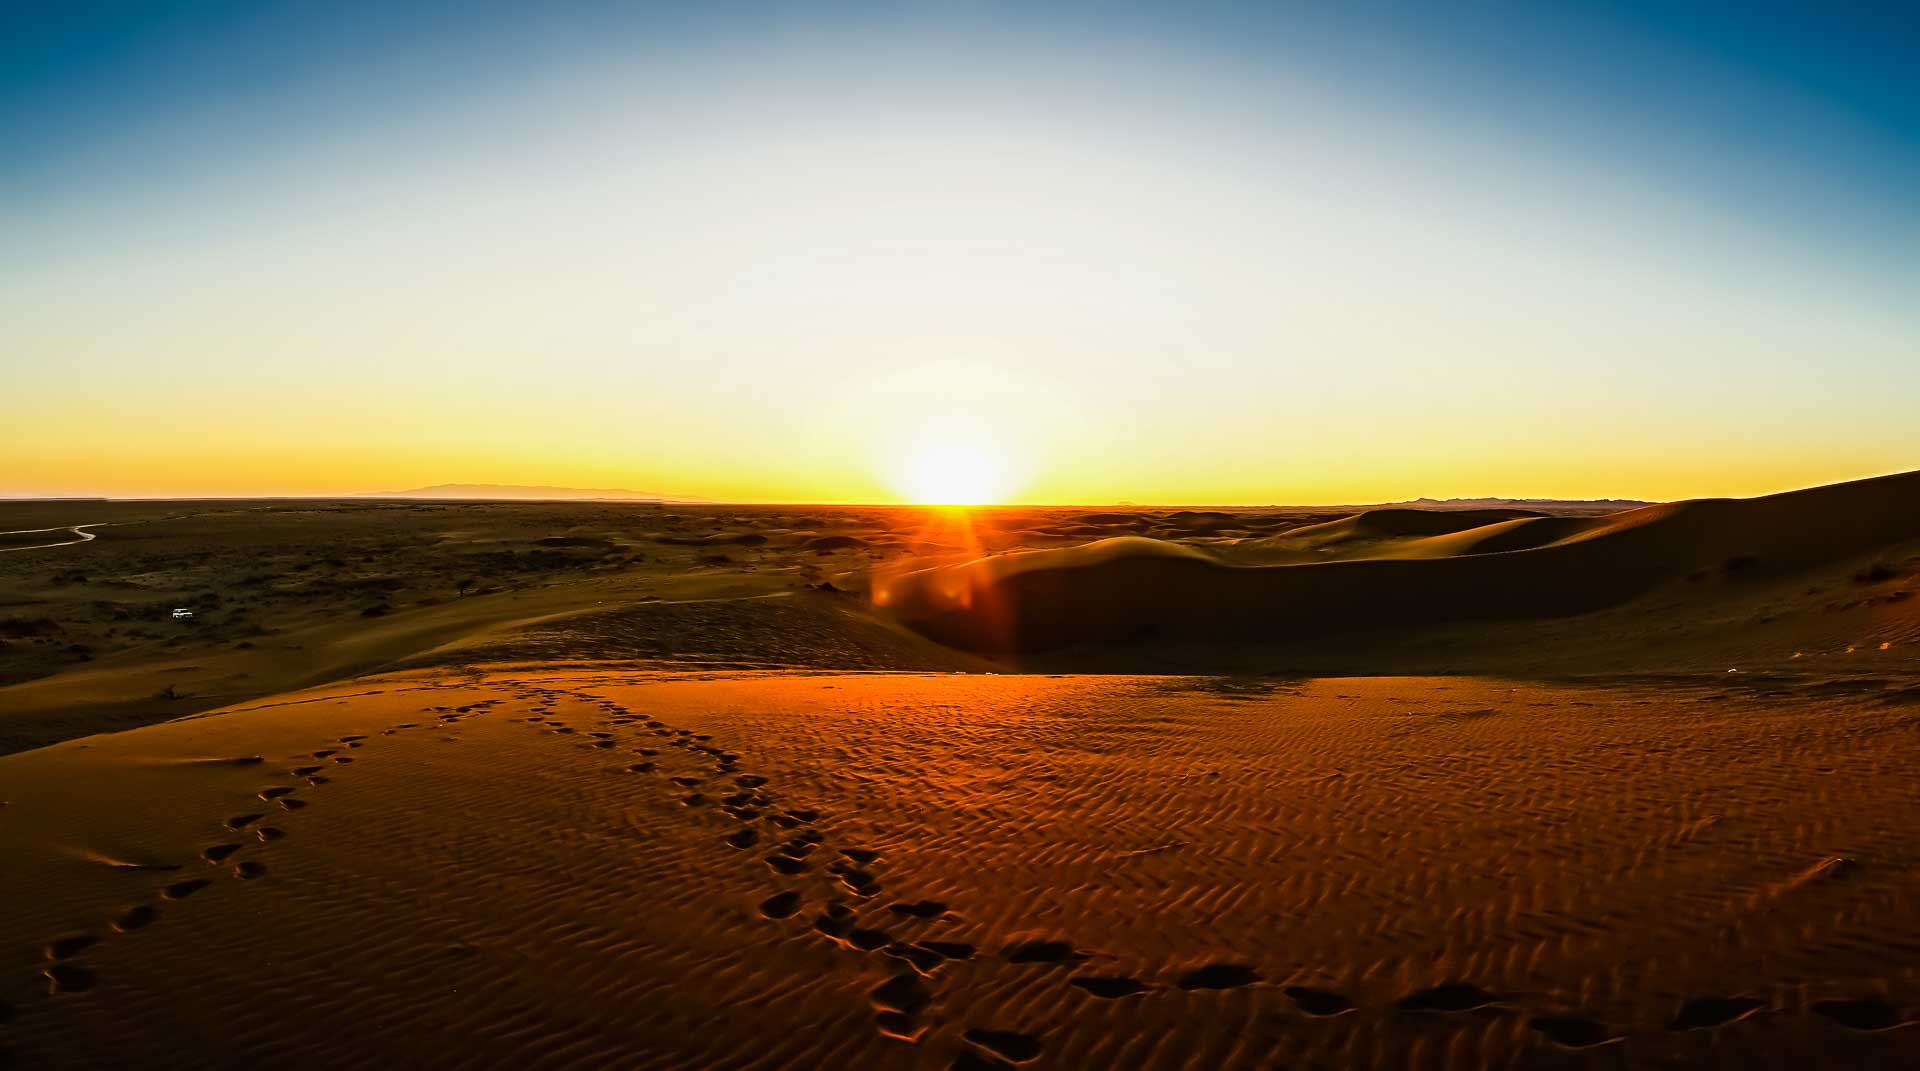 Maranjab Desert Kashan sunrise 2, kashan, iran, pescart, photo blog, travel blog, blog, photo travel blog, enrico pescantini, pescantini